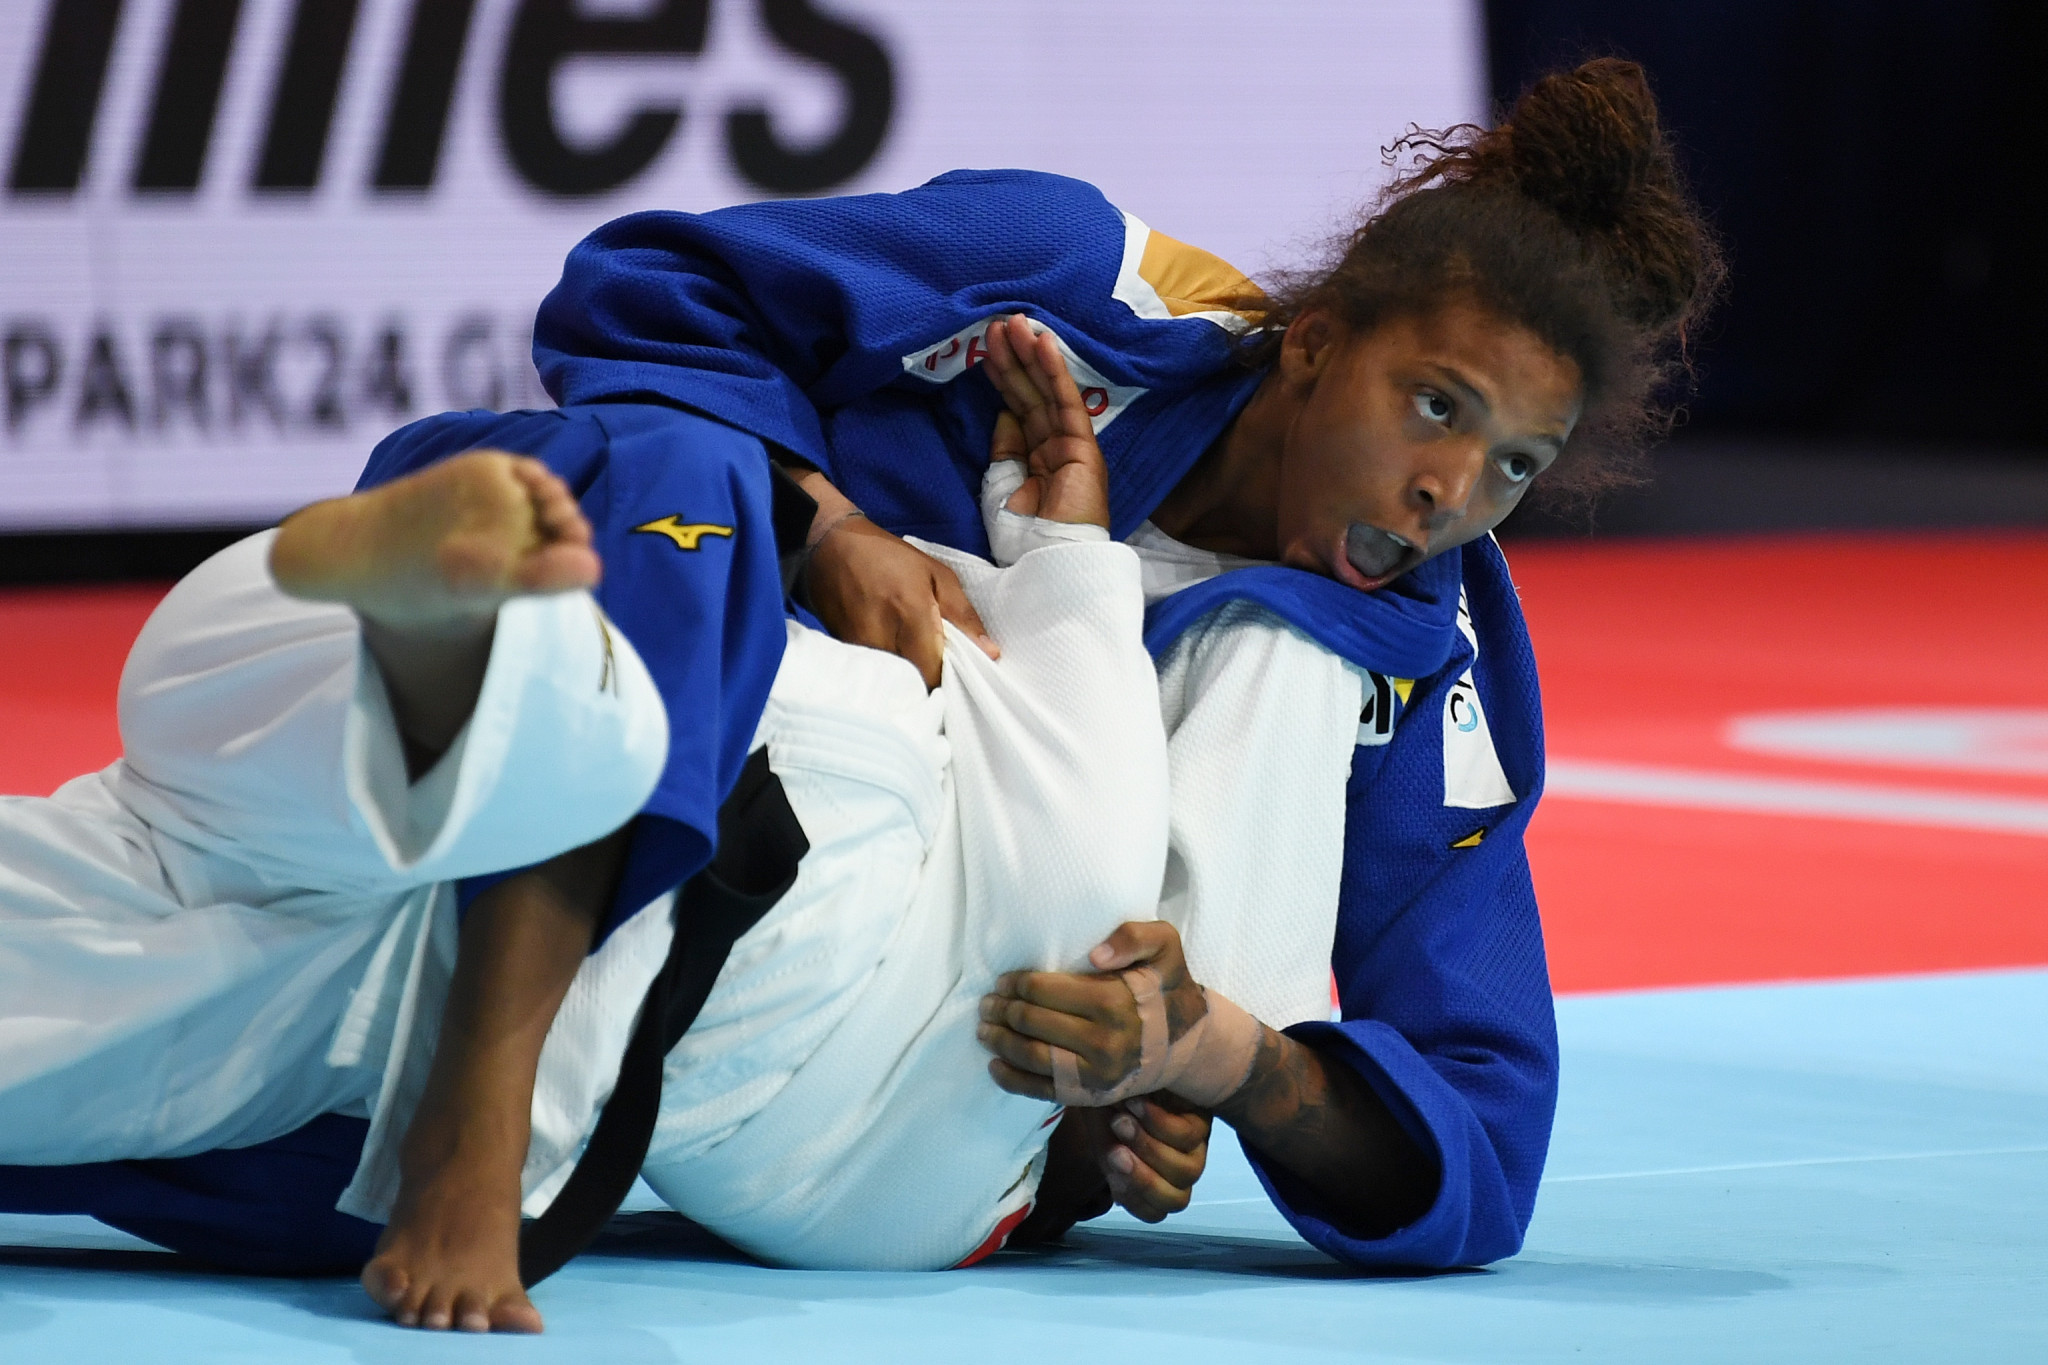 Rio 2016 Olympic champion Rafaela Silva took home the bronze medal in Tokyo ©Getty Images